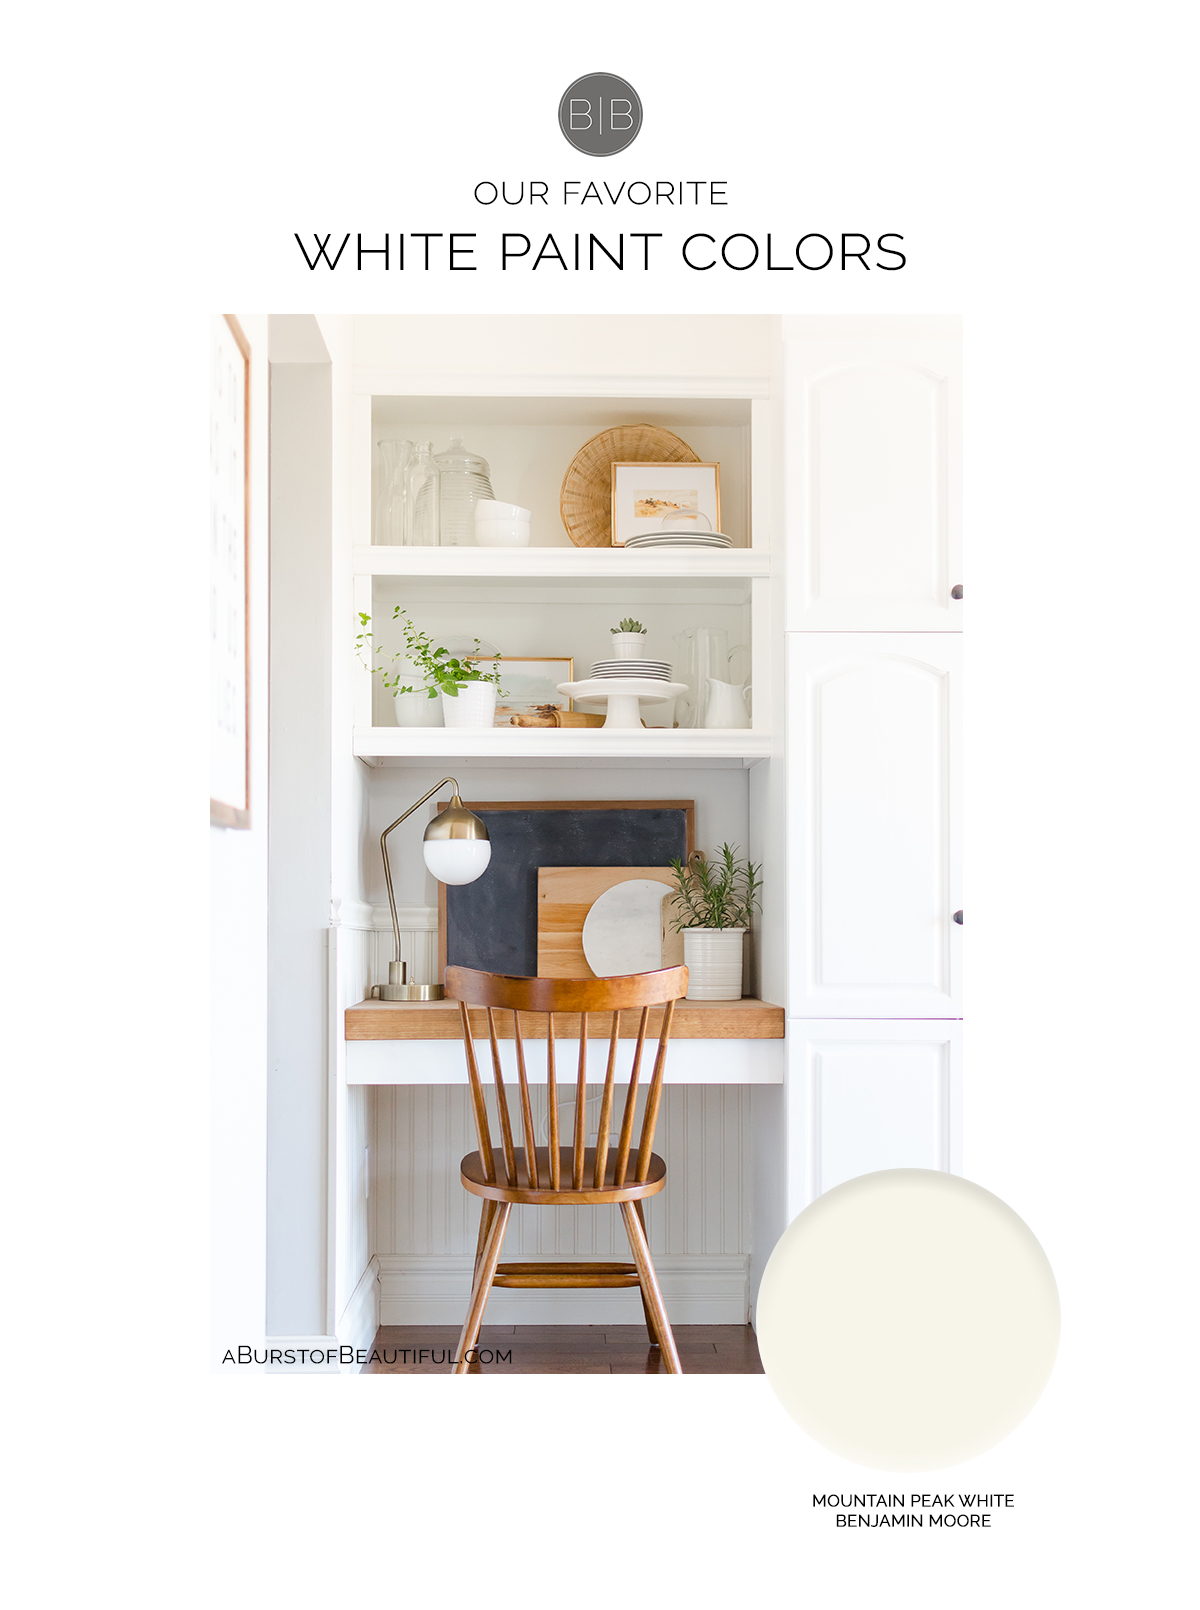 The Best White Paint Colors - A Burst of Beautiful Best White Paint Color For Kitchen Cabinets on paint colors for crown molding, paint colors for small kitchen ideas, paint colors for country kitchens, paint colors for gray cabinets, paint colors for wood cabinets, best kitchen colors with white cabinets, glaze colors for kitchen cabinets, paint colors for white marble, paint colors for hardwood floors, paint colors for white fireplaces, kitchen wall colors with white cabinets, paint colors for kitchen tables, paint colors for bathroom cabinets, painting kitchen cabinets, paint colors for modern kitchen, paint colors for countertops, paint colors for kitchen backsplash, paint colors for pantry, paint colors for kitchen island, paint colors for rustic kitchen,